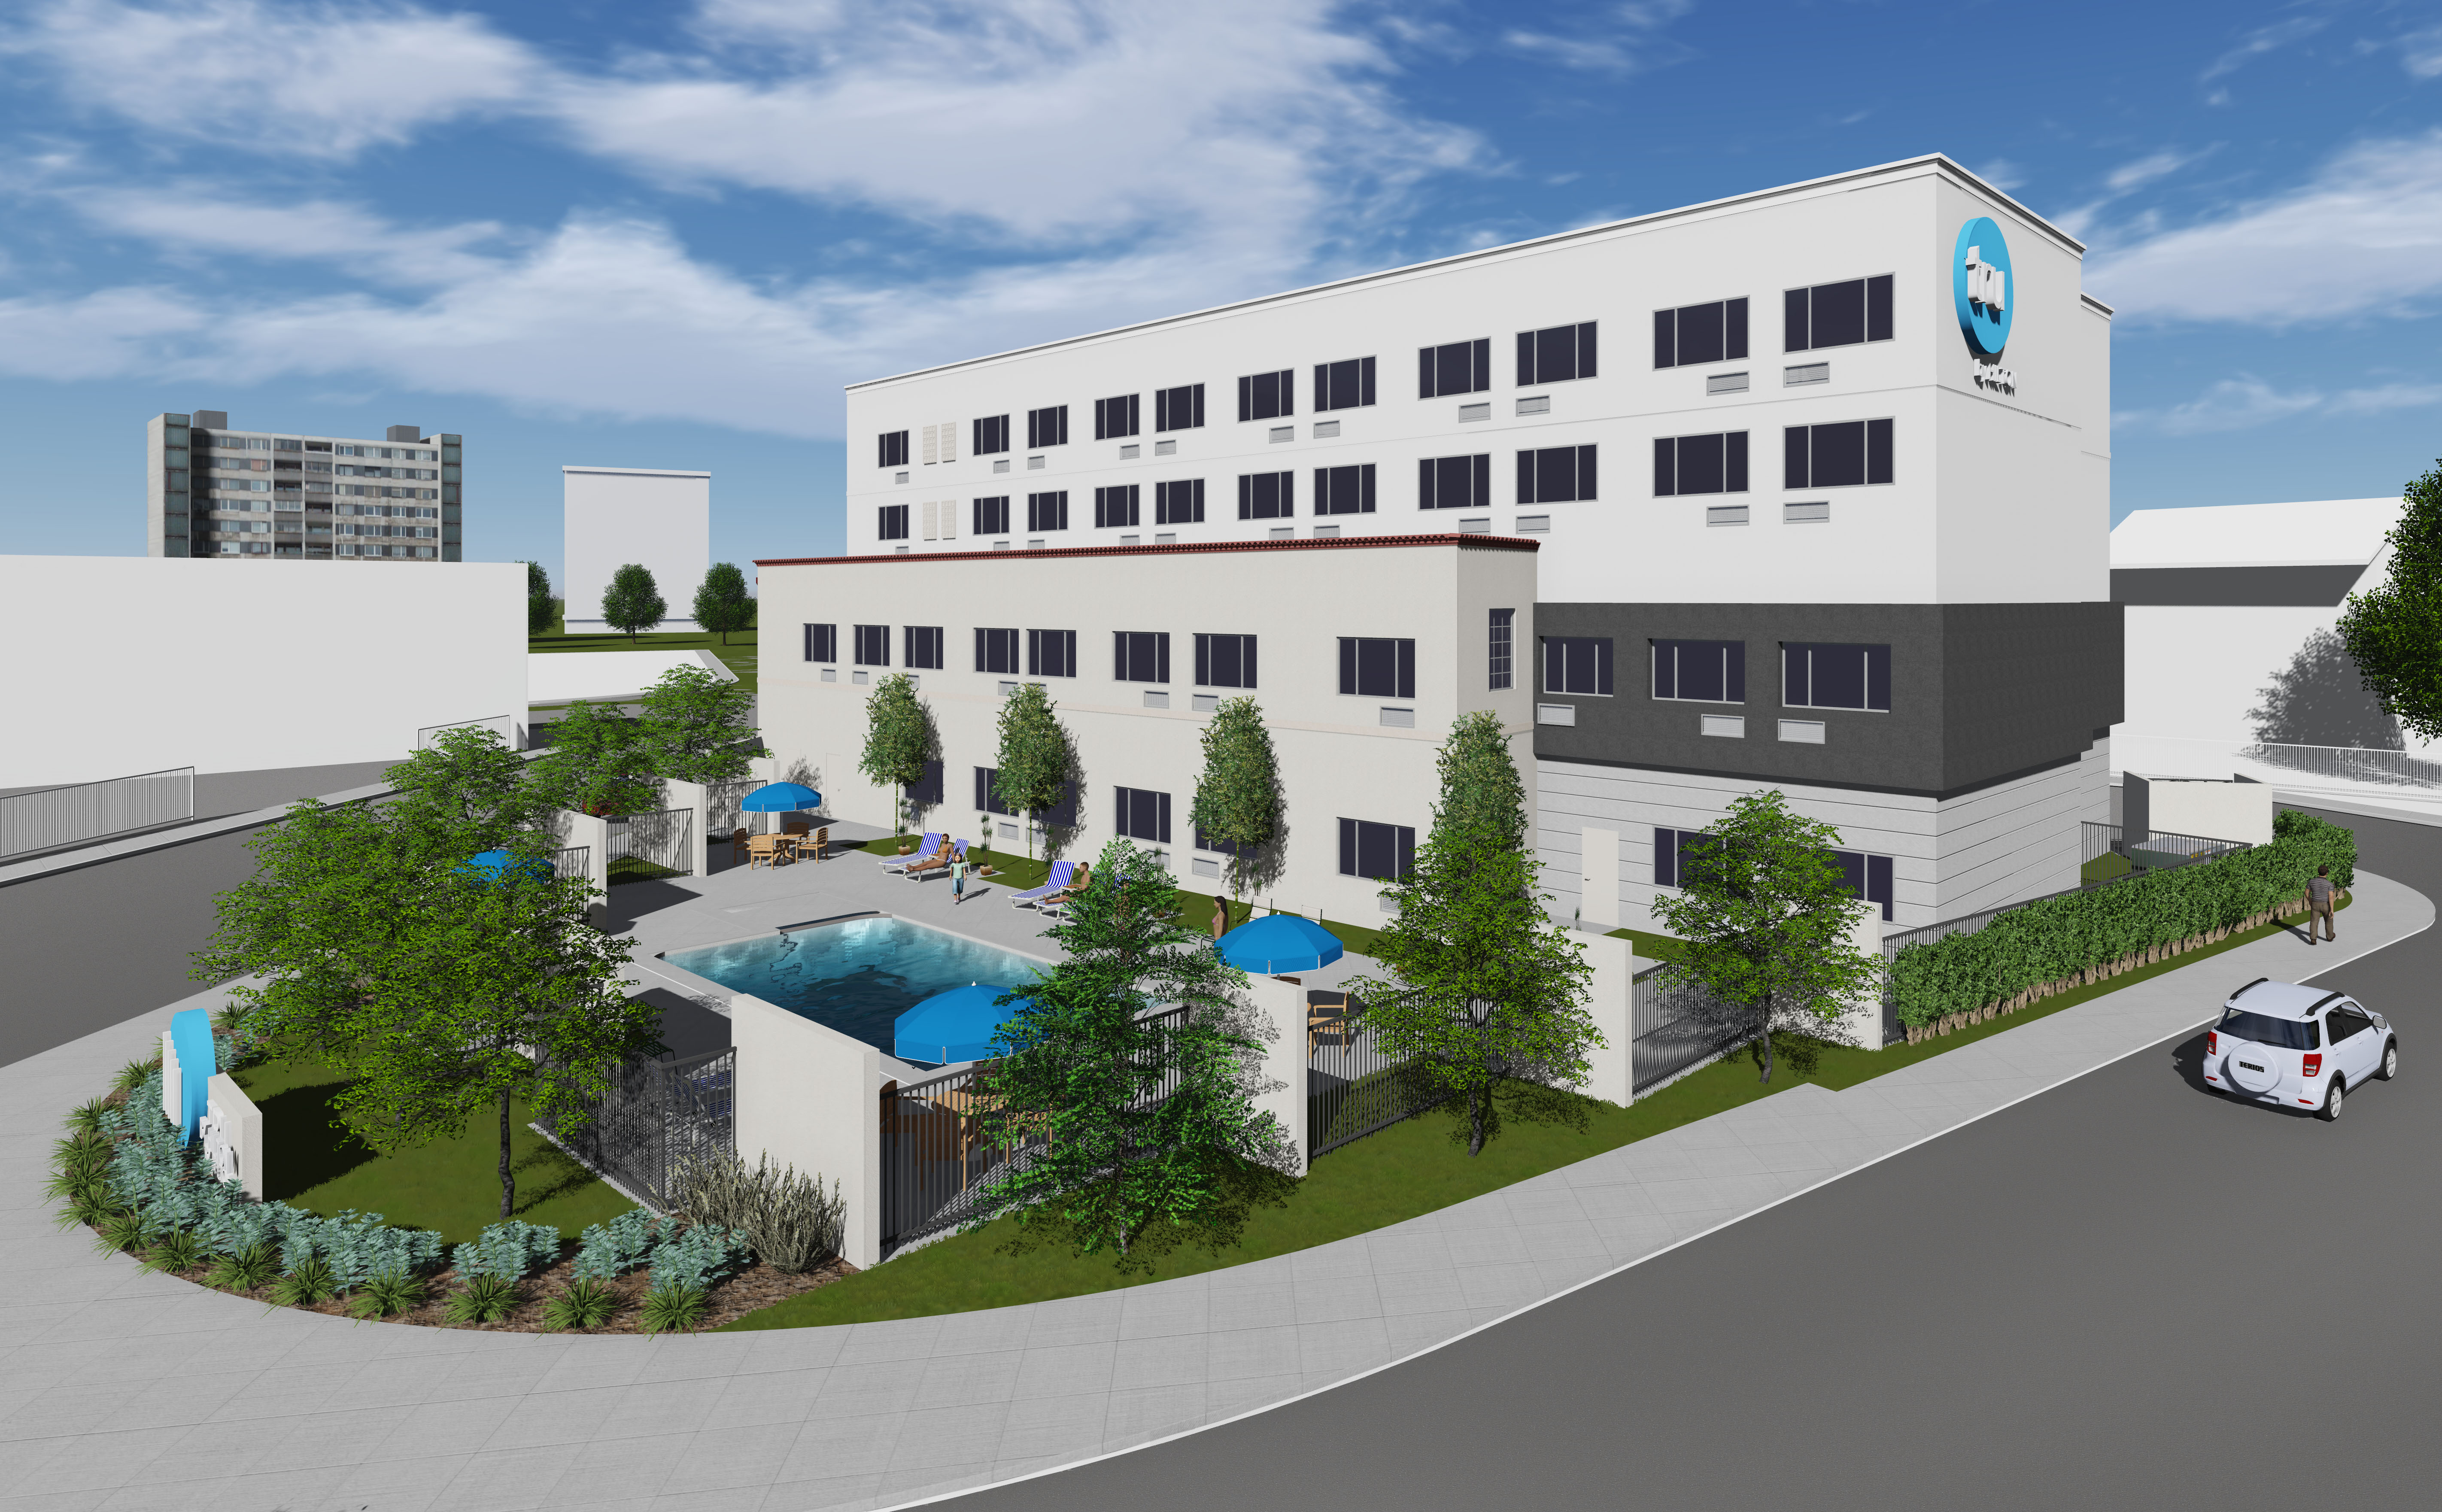 Tru By Hilton Expands Its Texas Footprint With New San